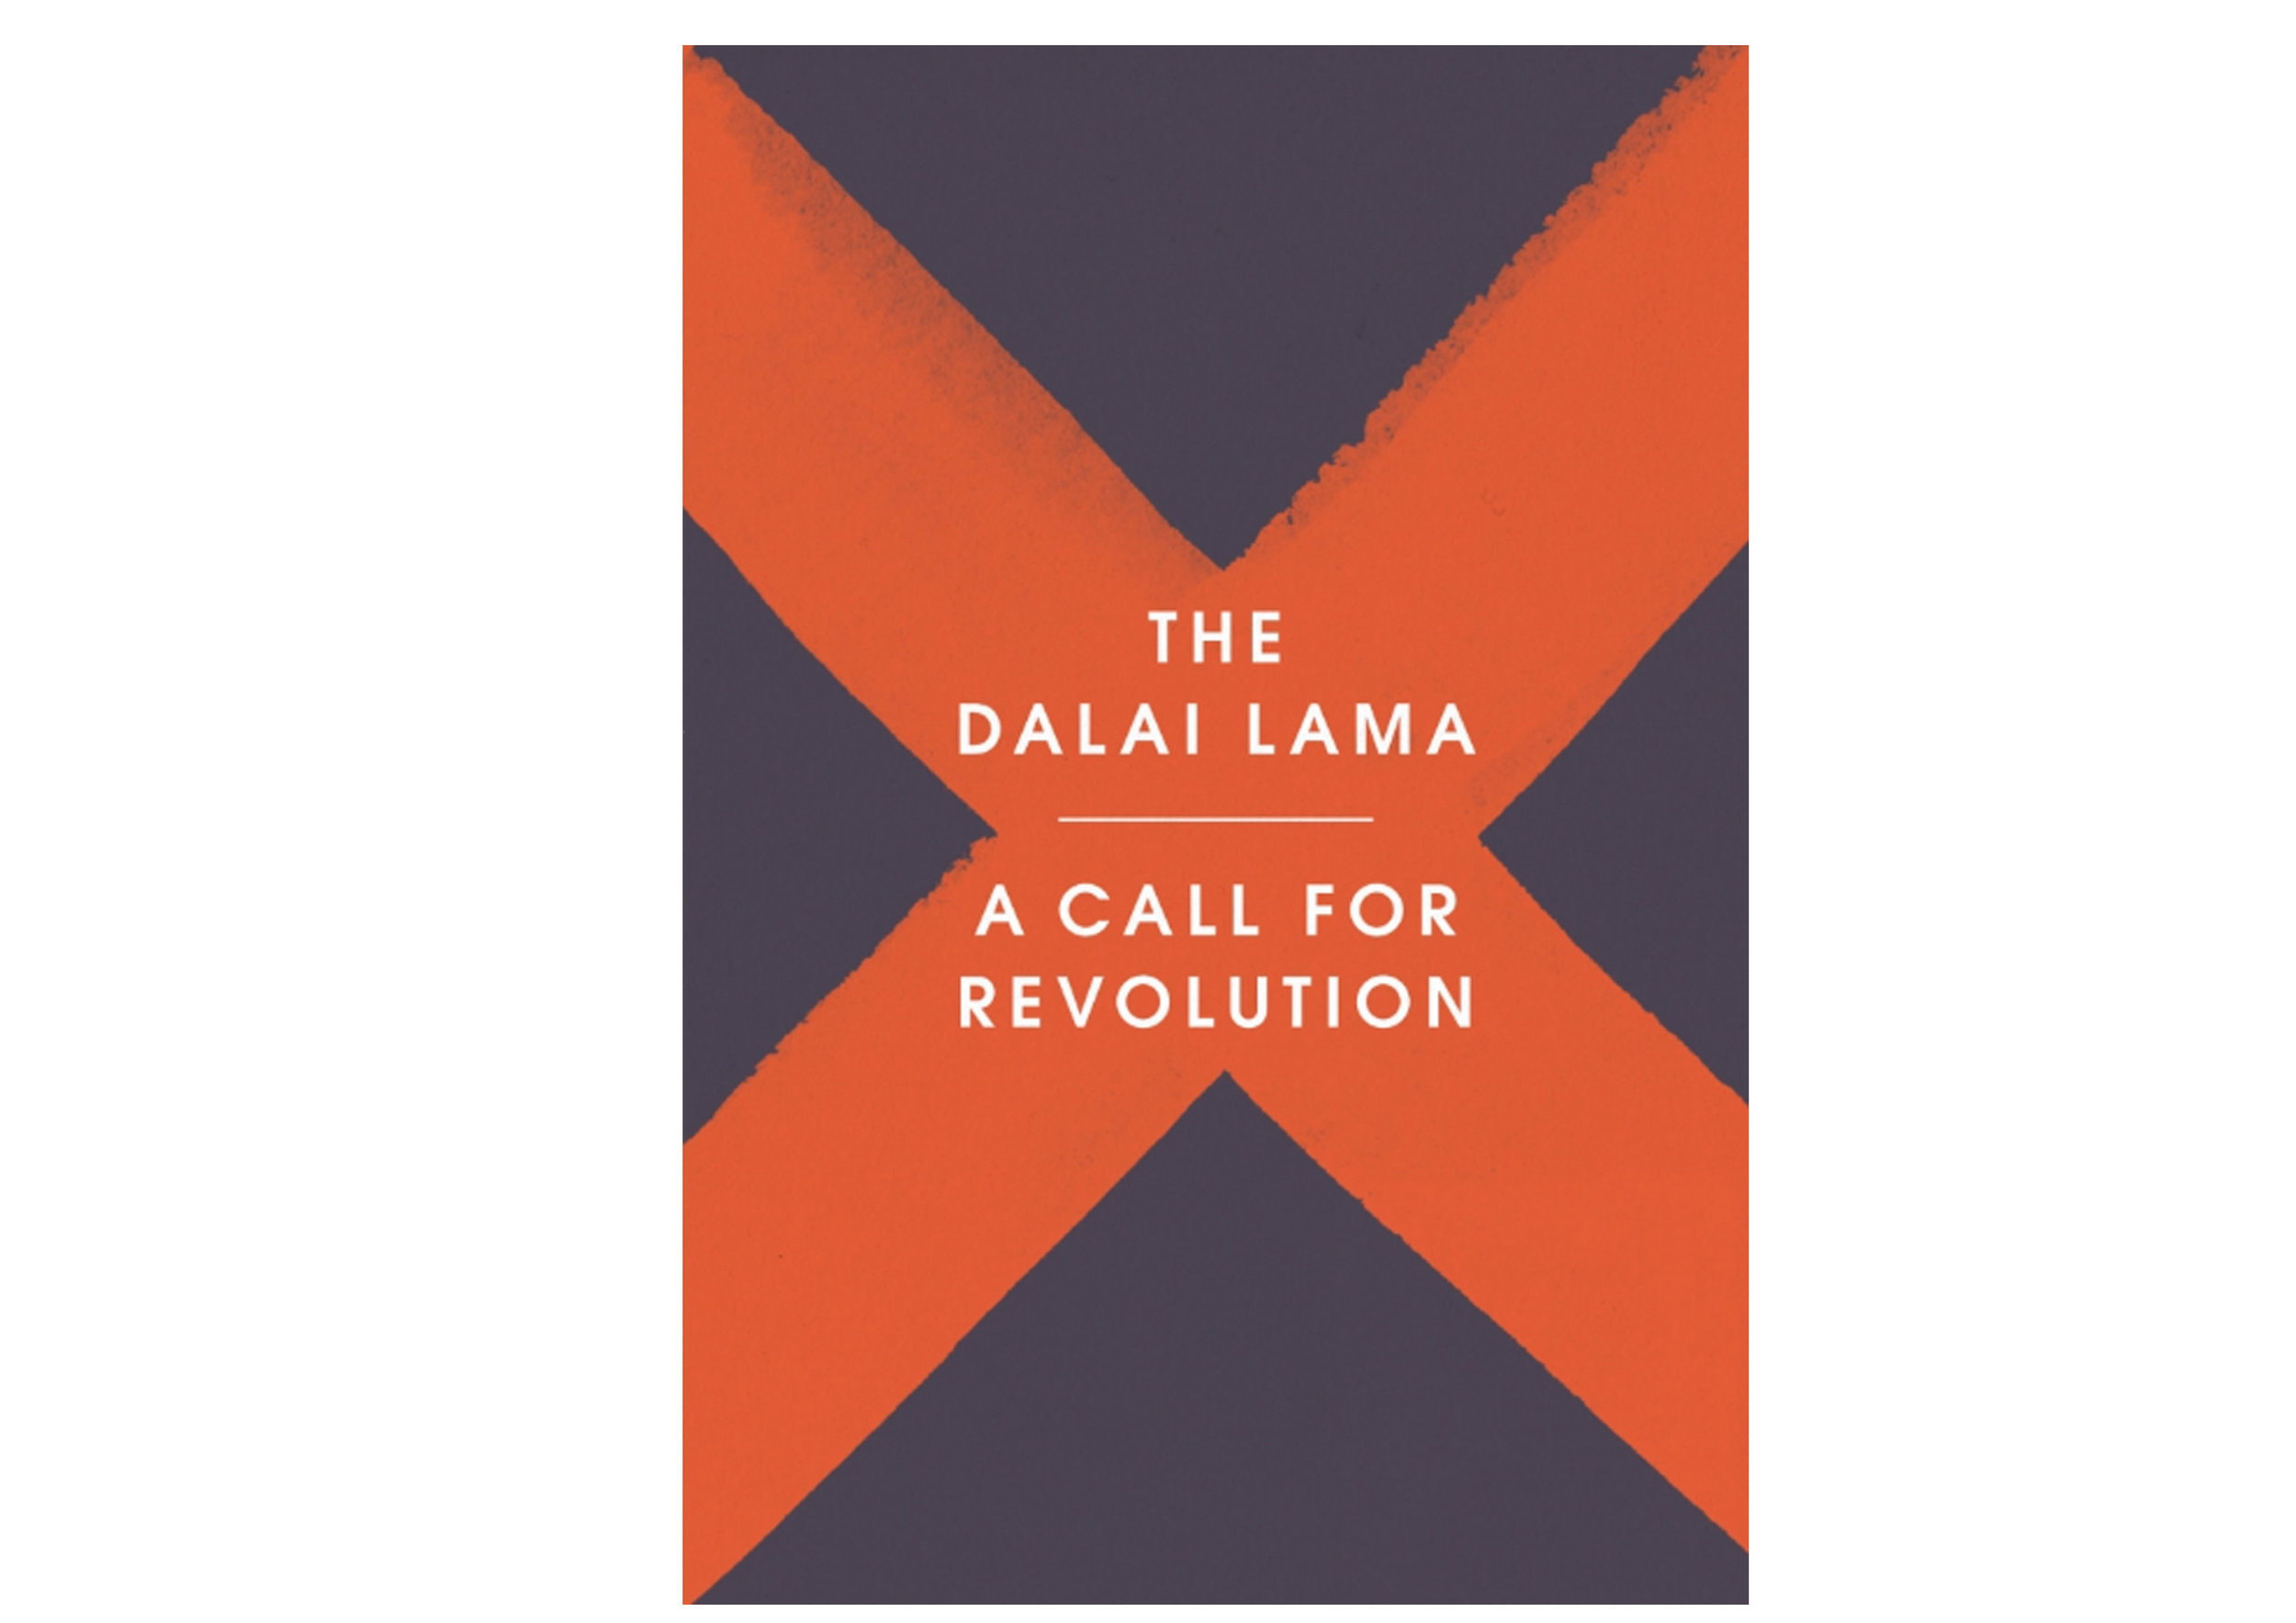 A Call for Revolution  by The Dalai Lama